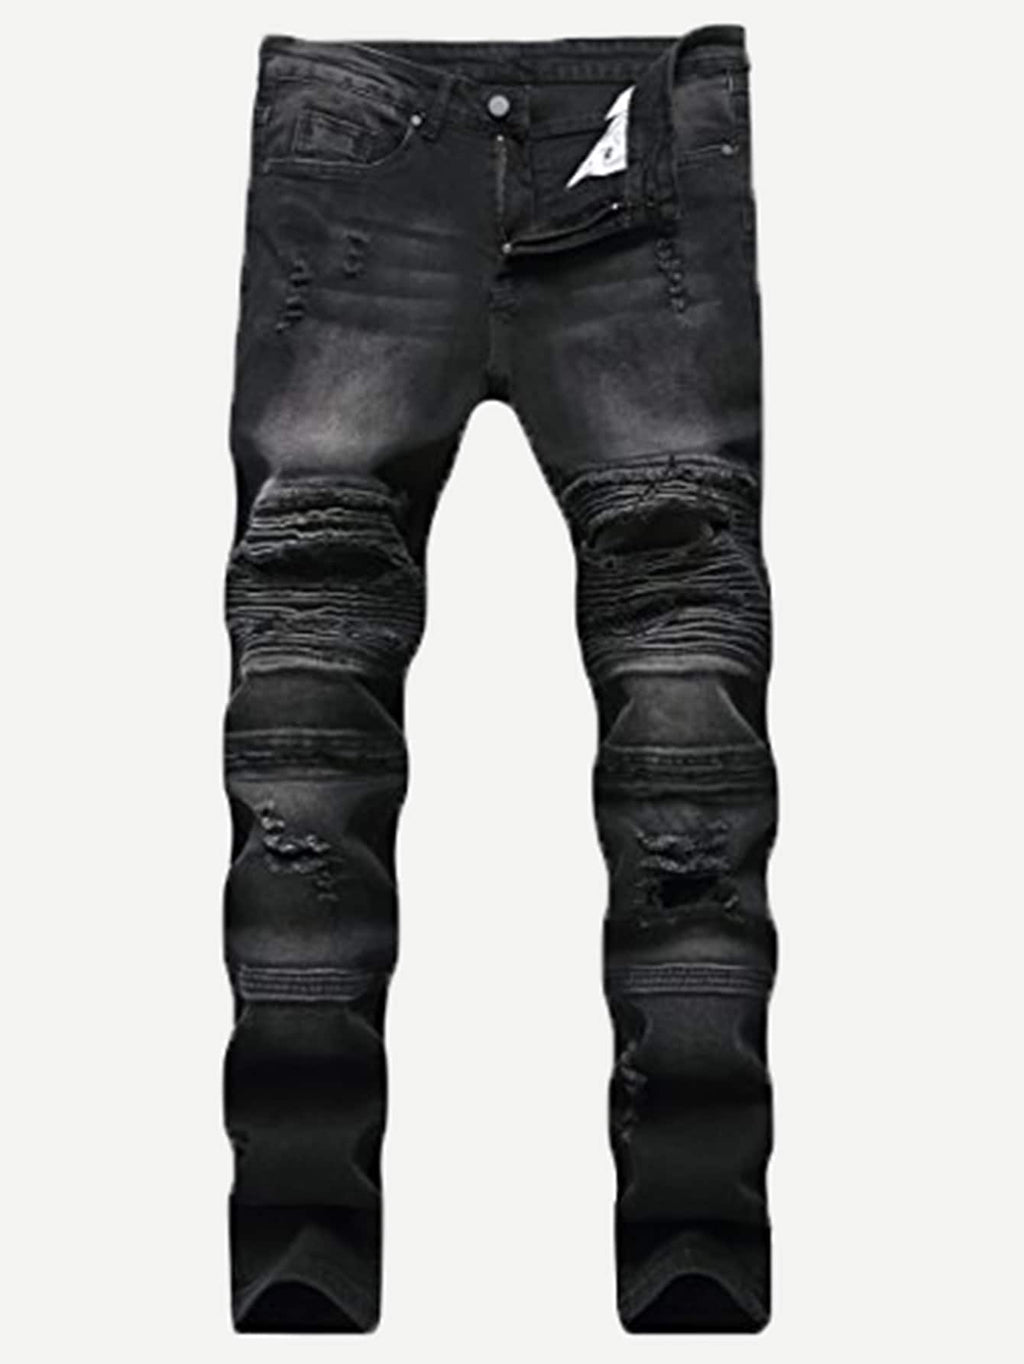 Ripped Jeans - Men Cut And Sew Destroyed Jeans